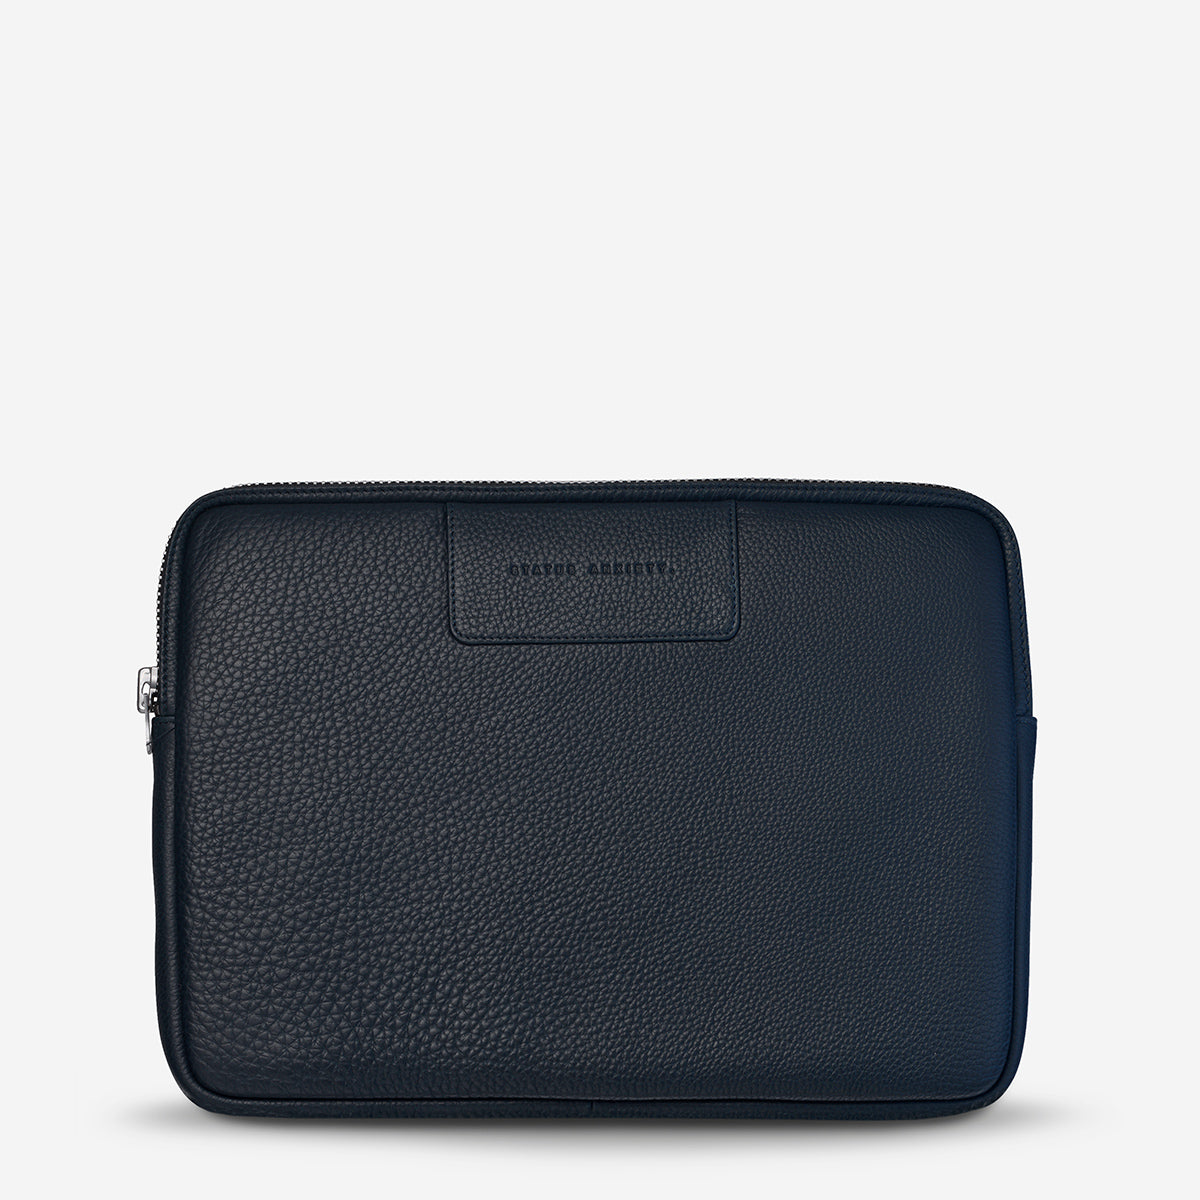 Status Anxiety Before I Leave Leather Laptop Case Navy Blue